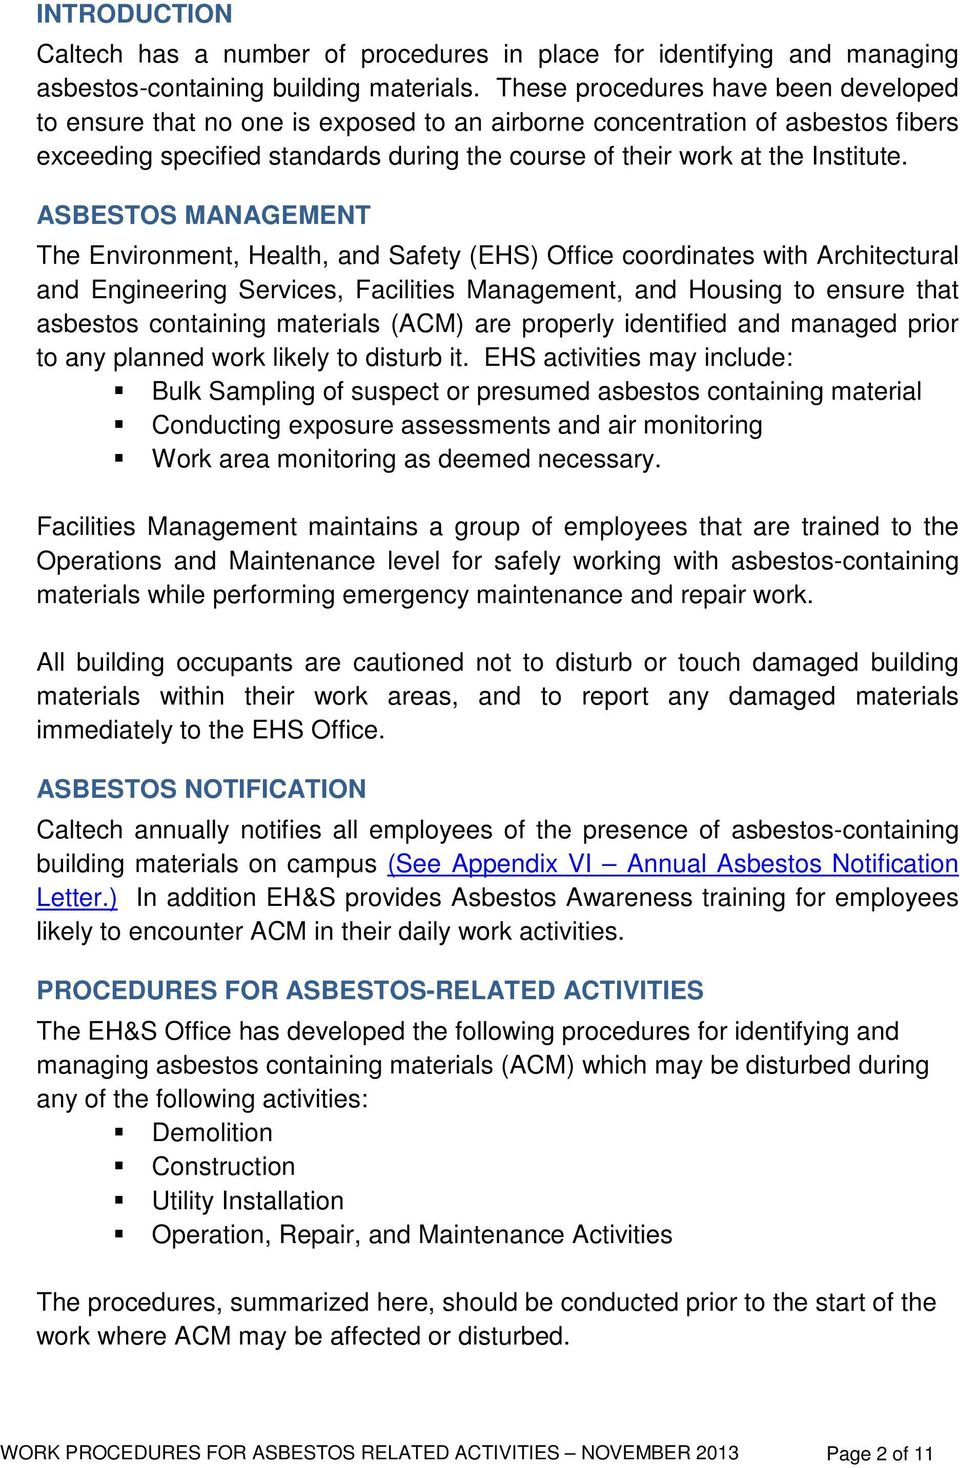 ASBESTOS MANAGEMENT The Environment, Health, and Safety (EHS) Office coordinates with Architectural and Engineering Services, Facilities Management, and Housing to ensure that asbestos containing